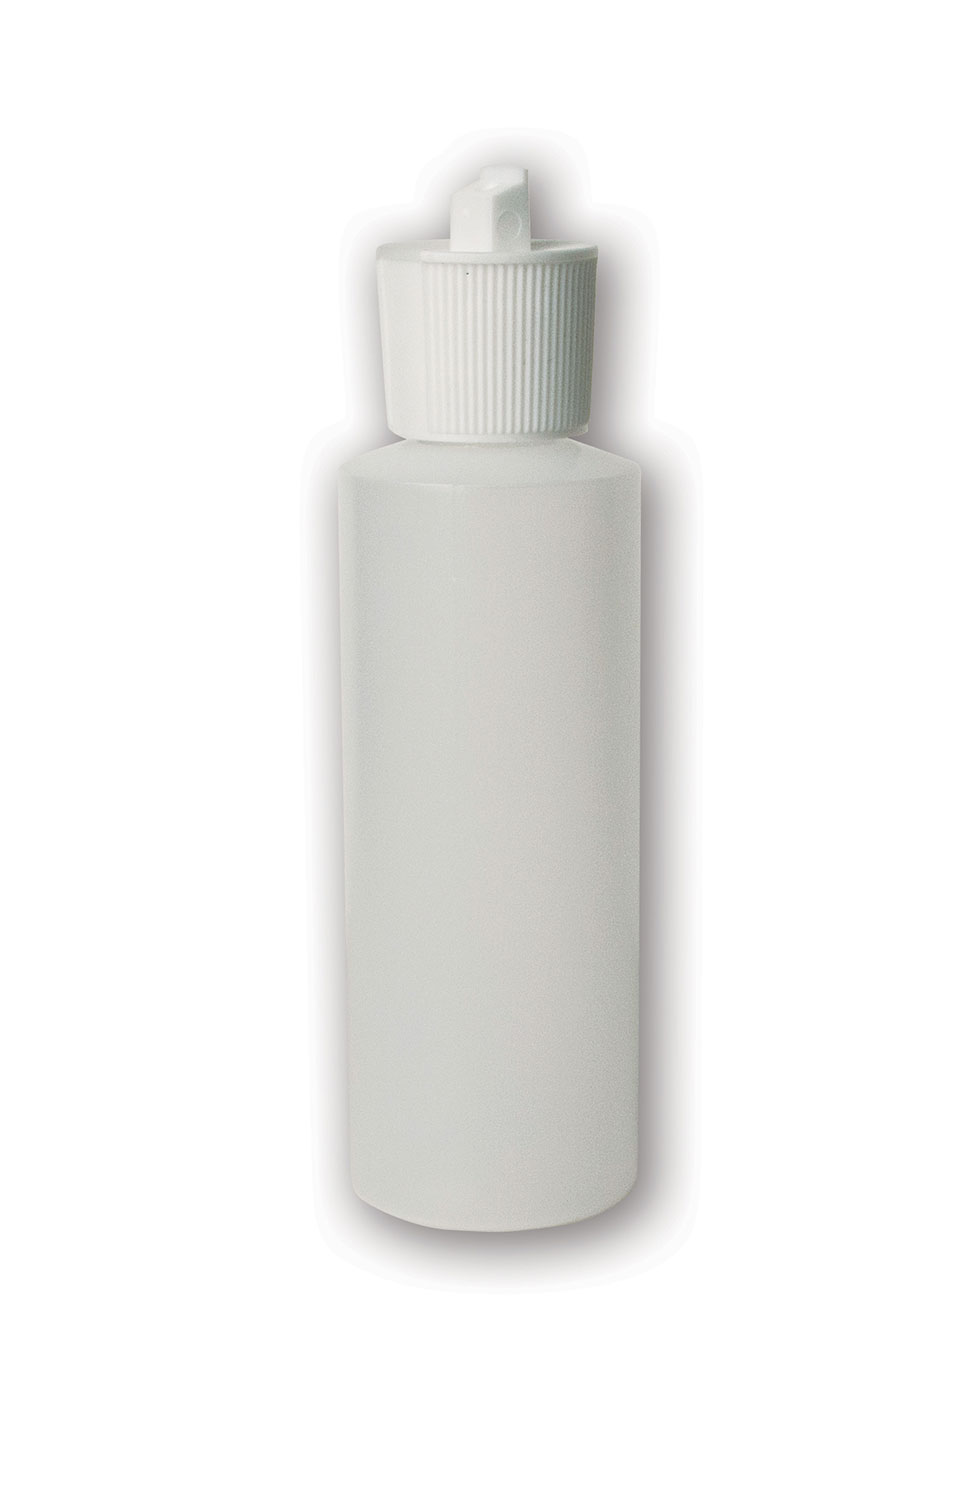 4 oz Translucent#Squeezable Bottle#(plastic w/spout cap)#Item ACC2122